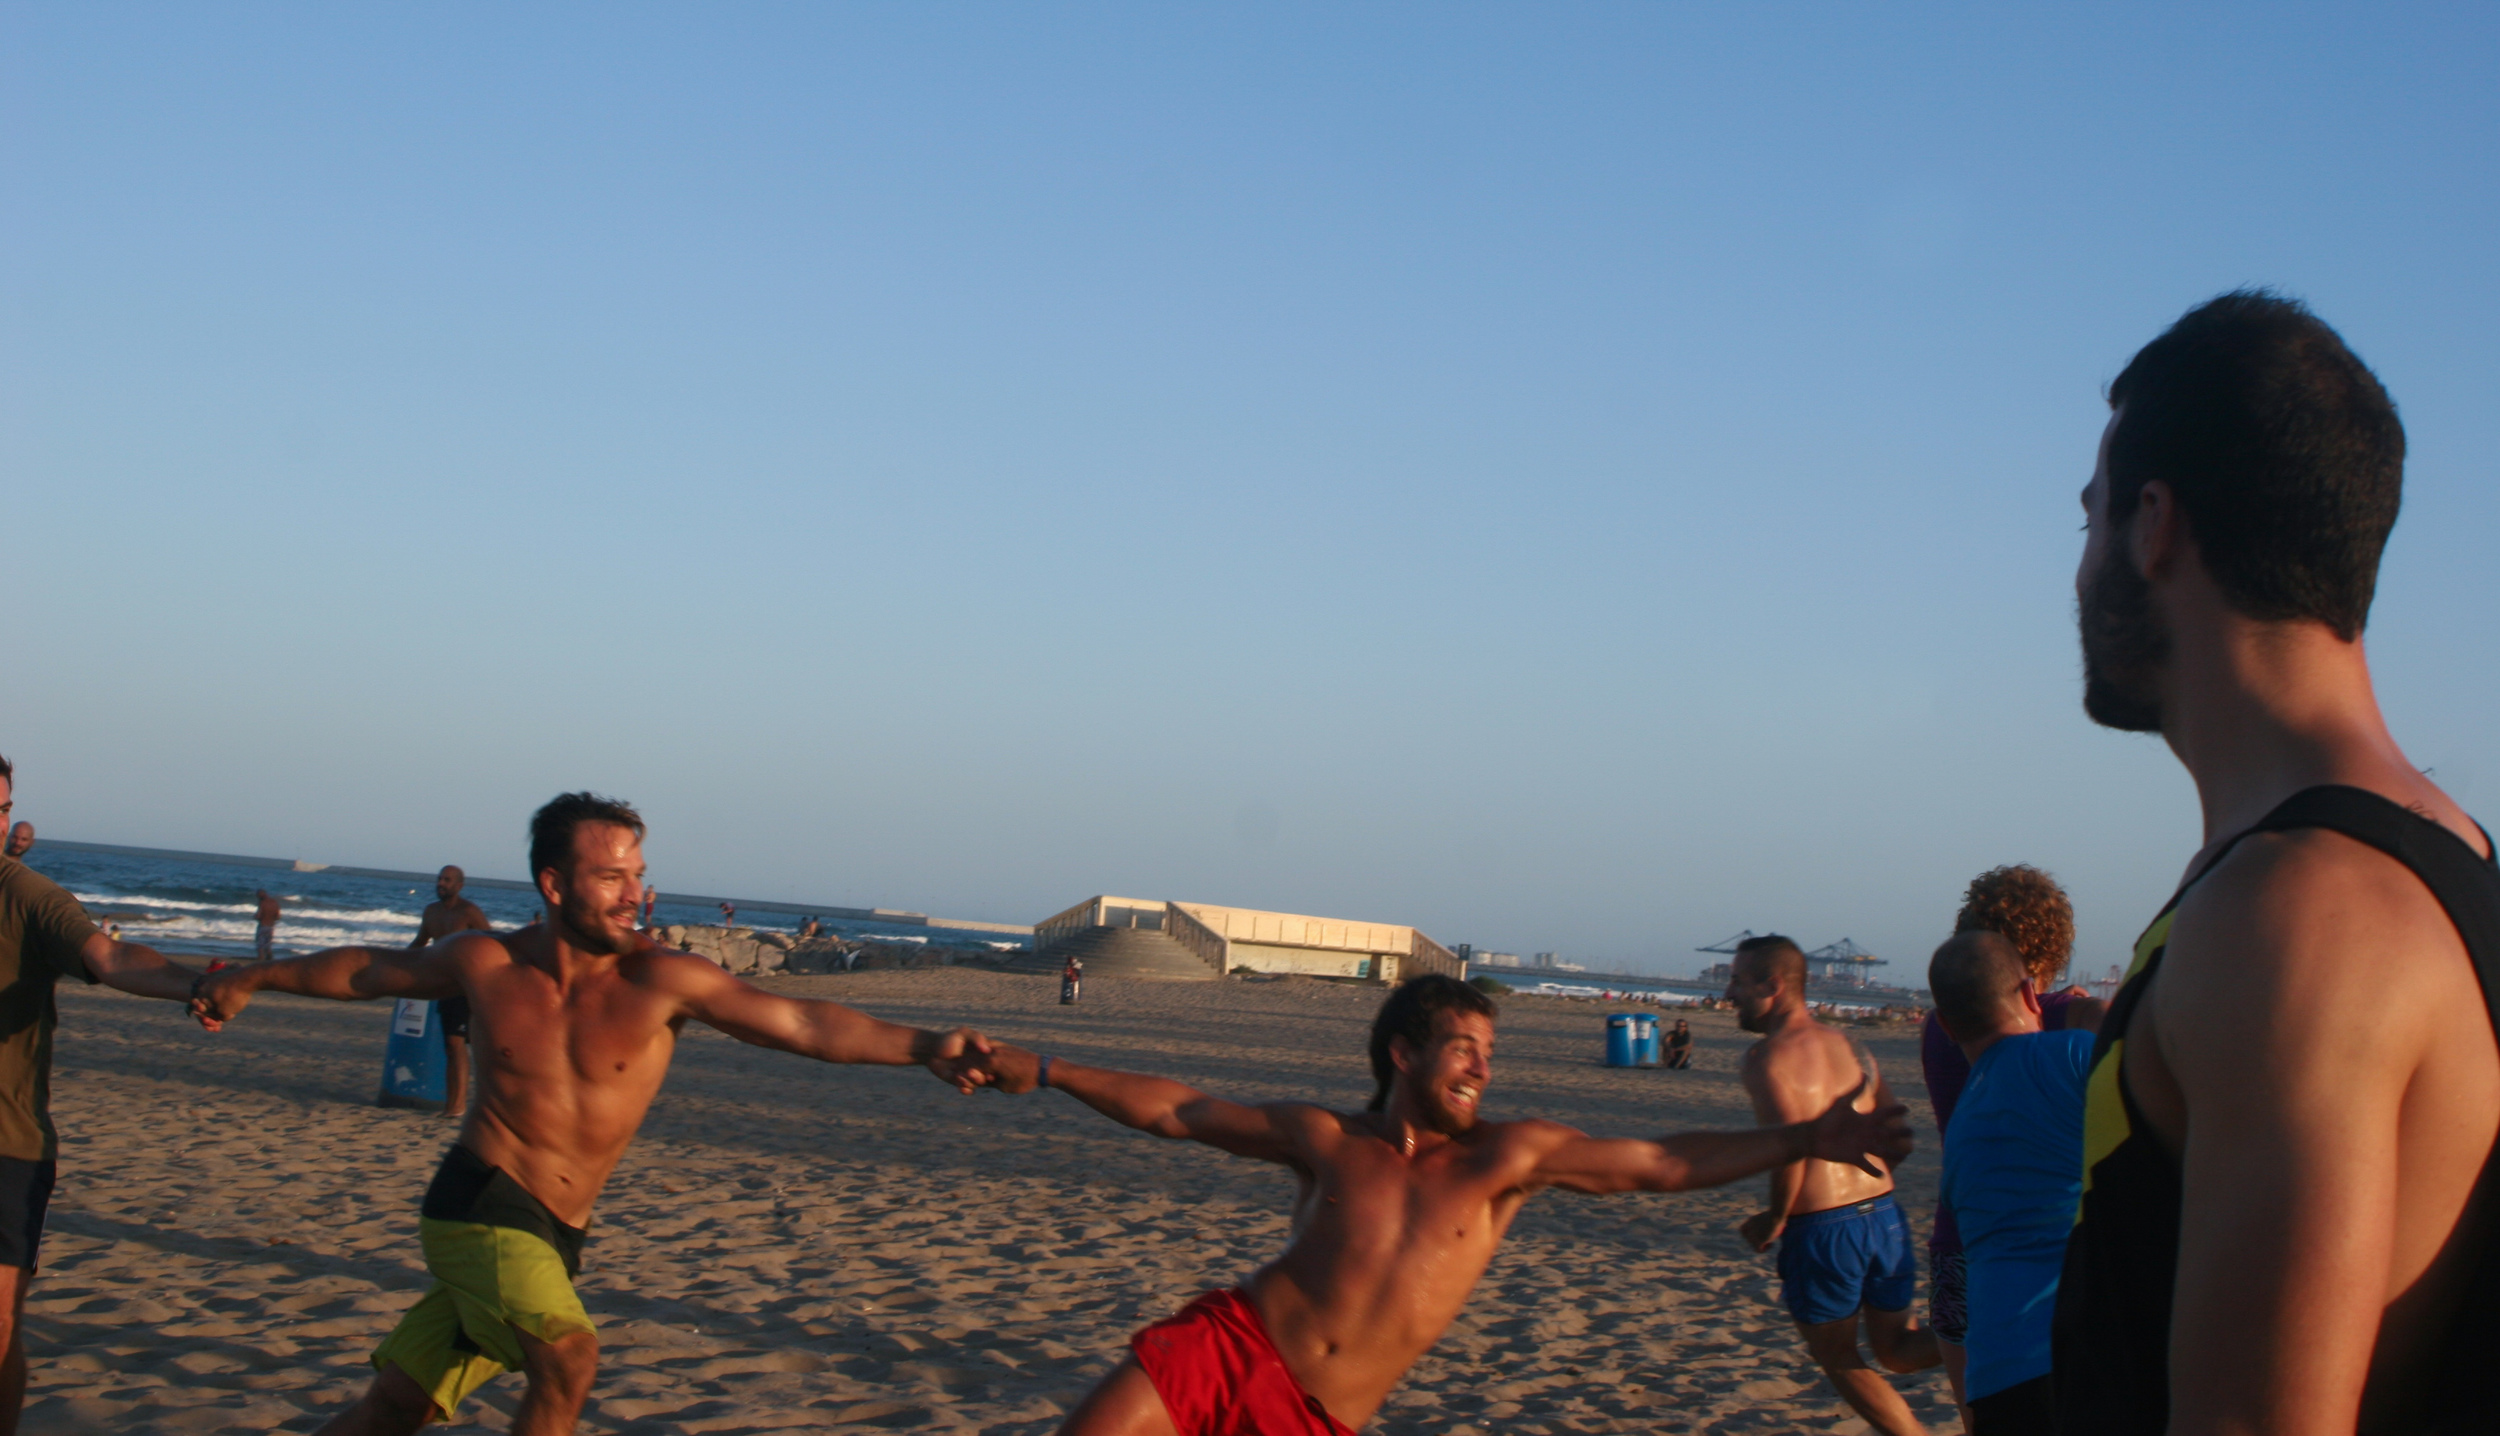 Full_CrossFit_Beach_Wod_V2_2015-27.jpg